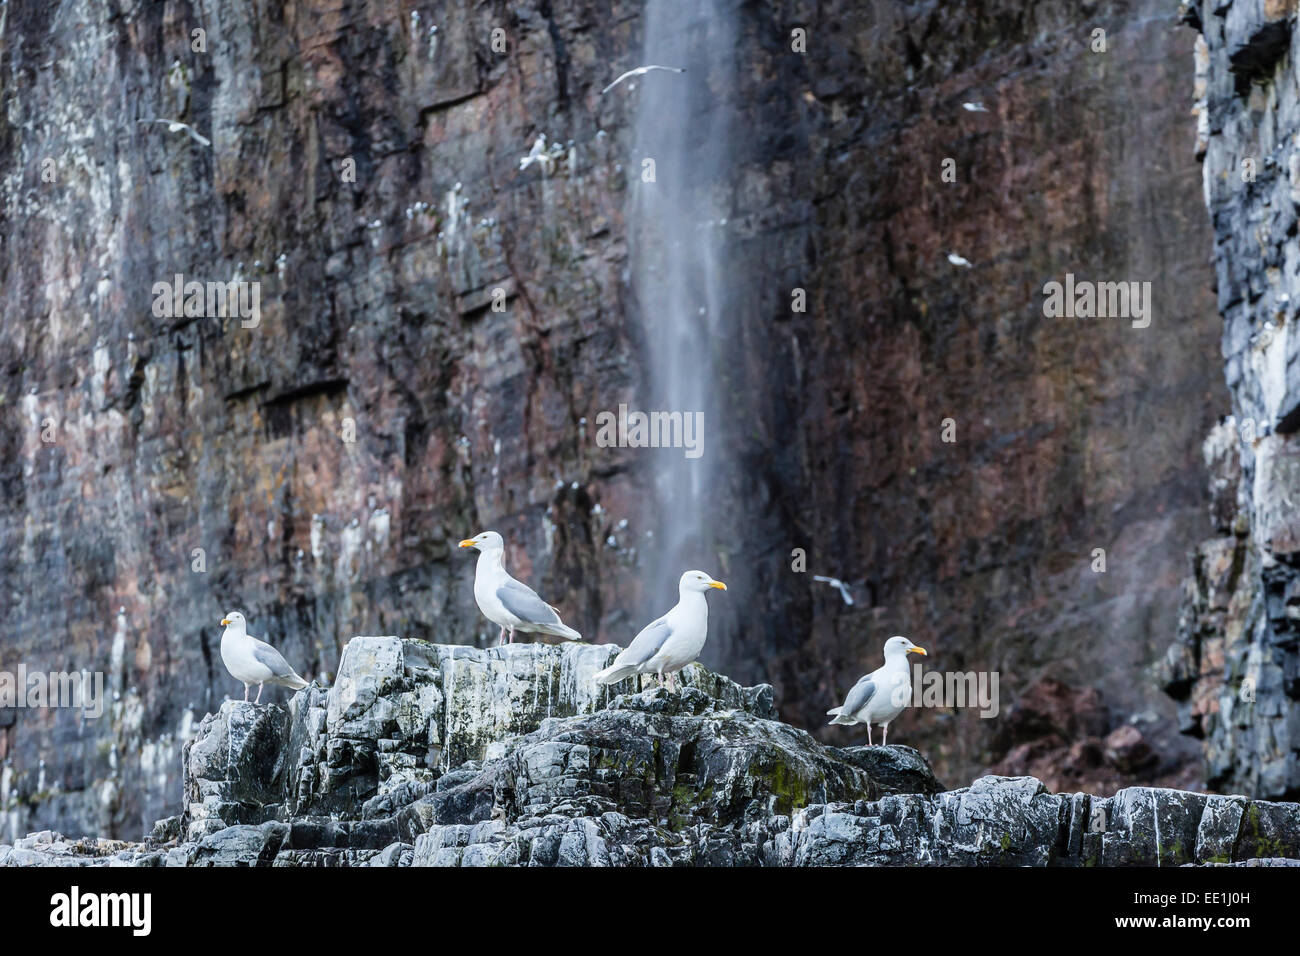 Adult glaucous gulls (Larus hyperboreus) at Bjornoya, Bear Island, Norway, Scandinavia, Europe - Stock Image